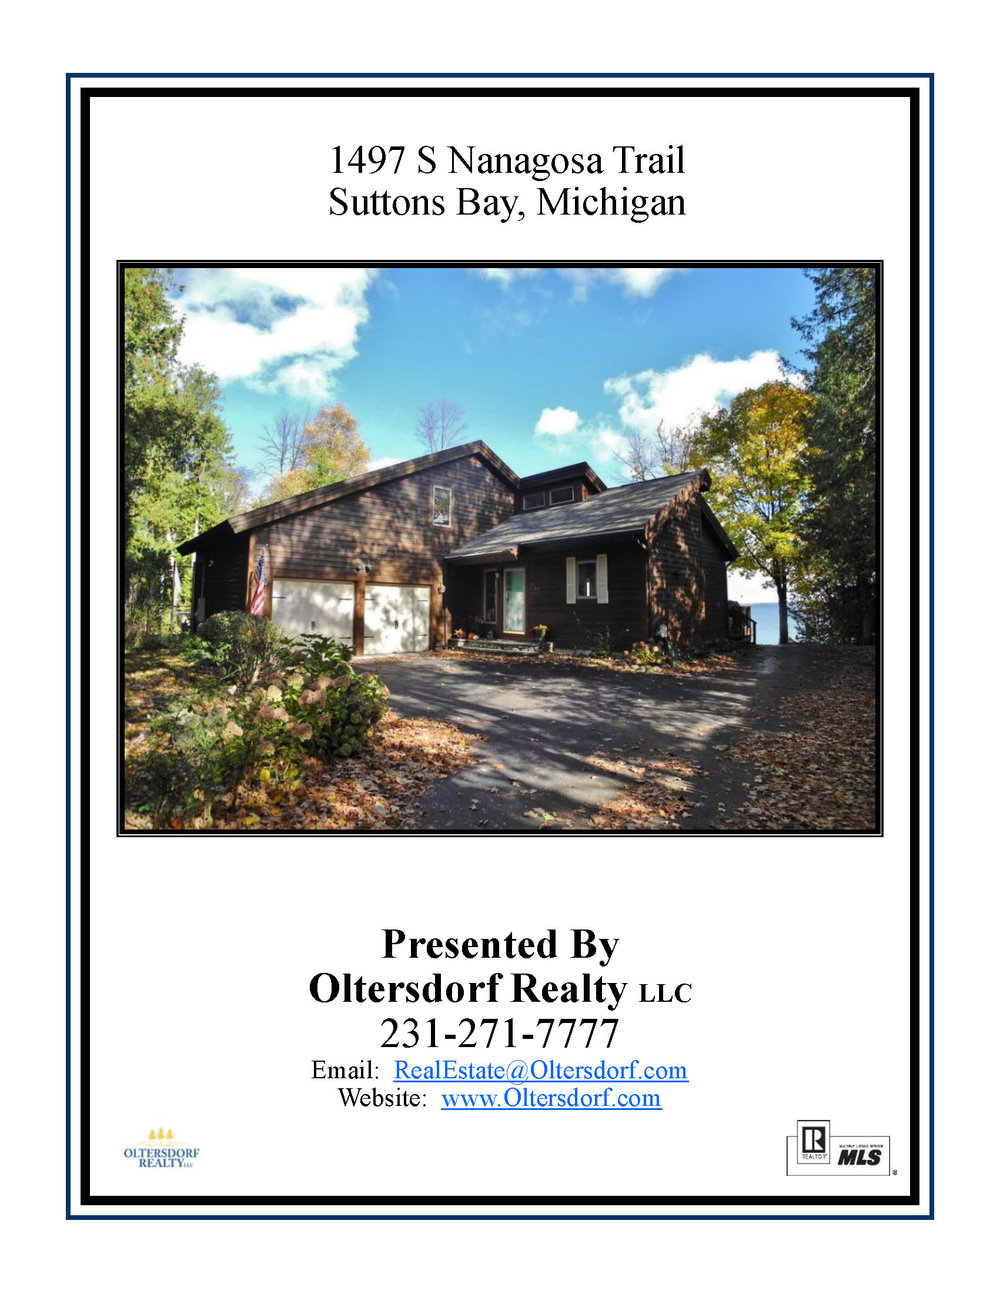 1497 S Nanagosa Trail, Suttons Bay, MI – Home with 200' on West Grand Traverse Bay Full Marketing Packet (2).jpg